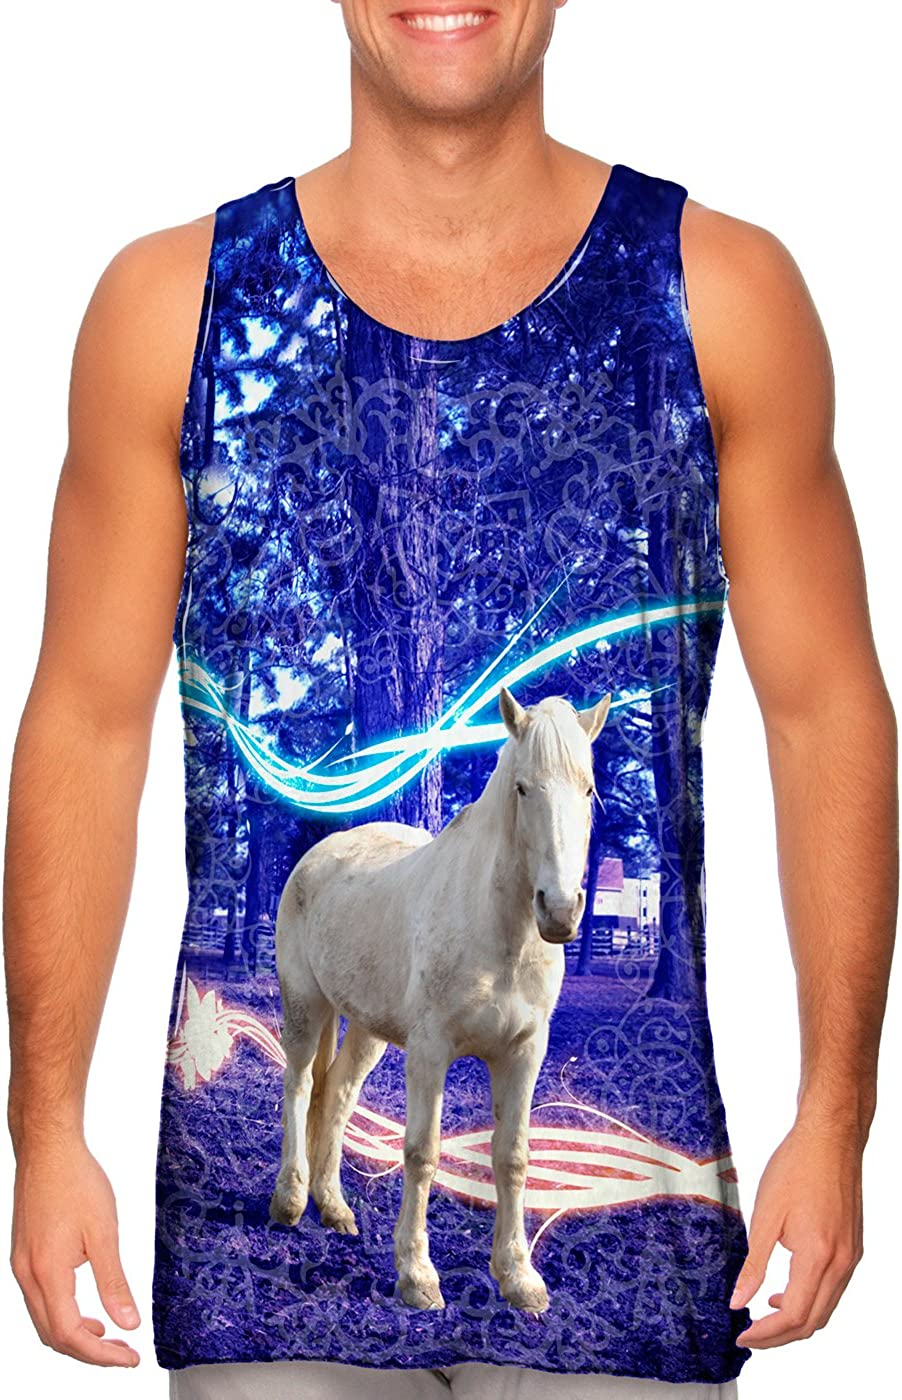 Yizzam AnimalShirtsUSA- Max 66% OFF Fairy Horse Mens -Tshirt- Top Ranking integrated 1st place Tank